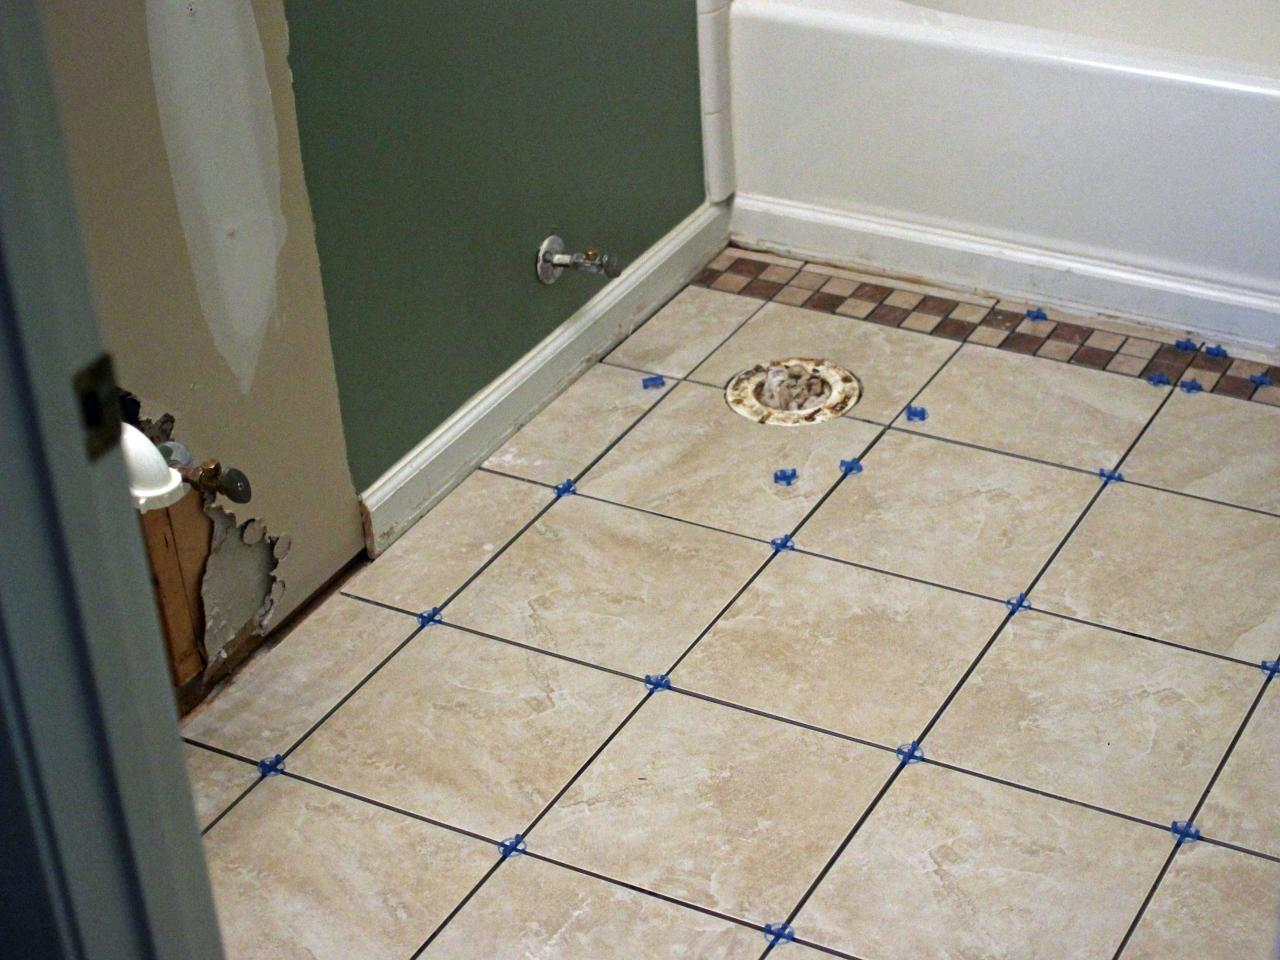 Bathroom Floor Tiles Images Step Bathroom Floor Tiles Images DIY - Bathroom floor materials